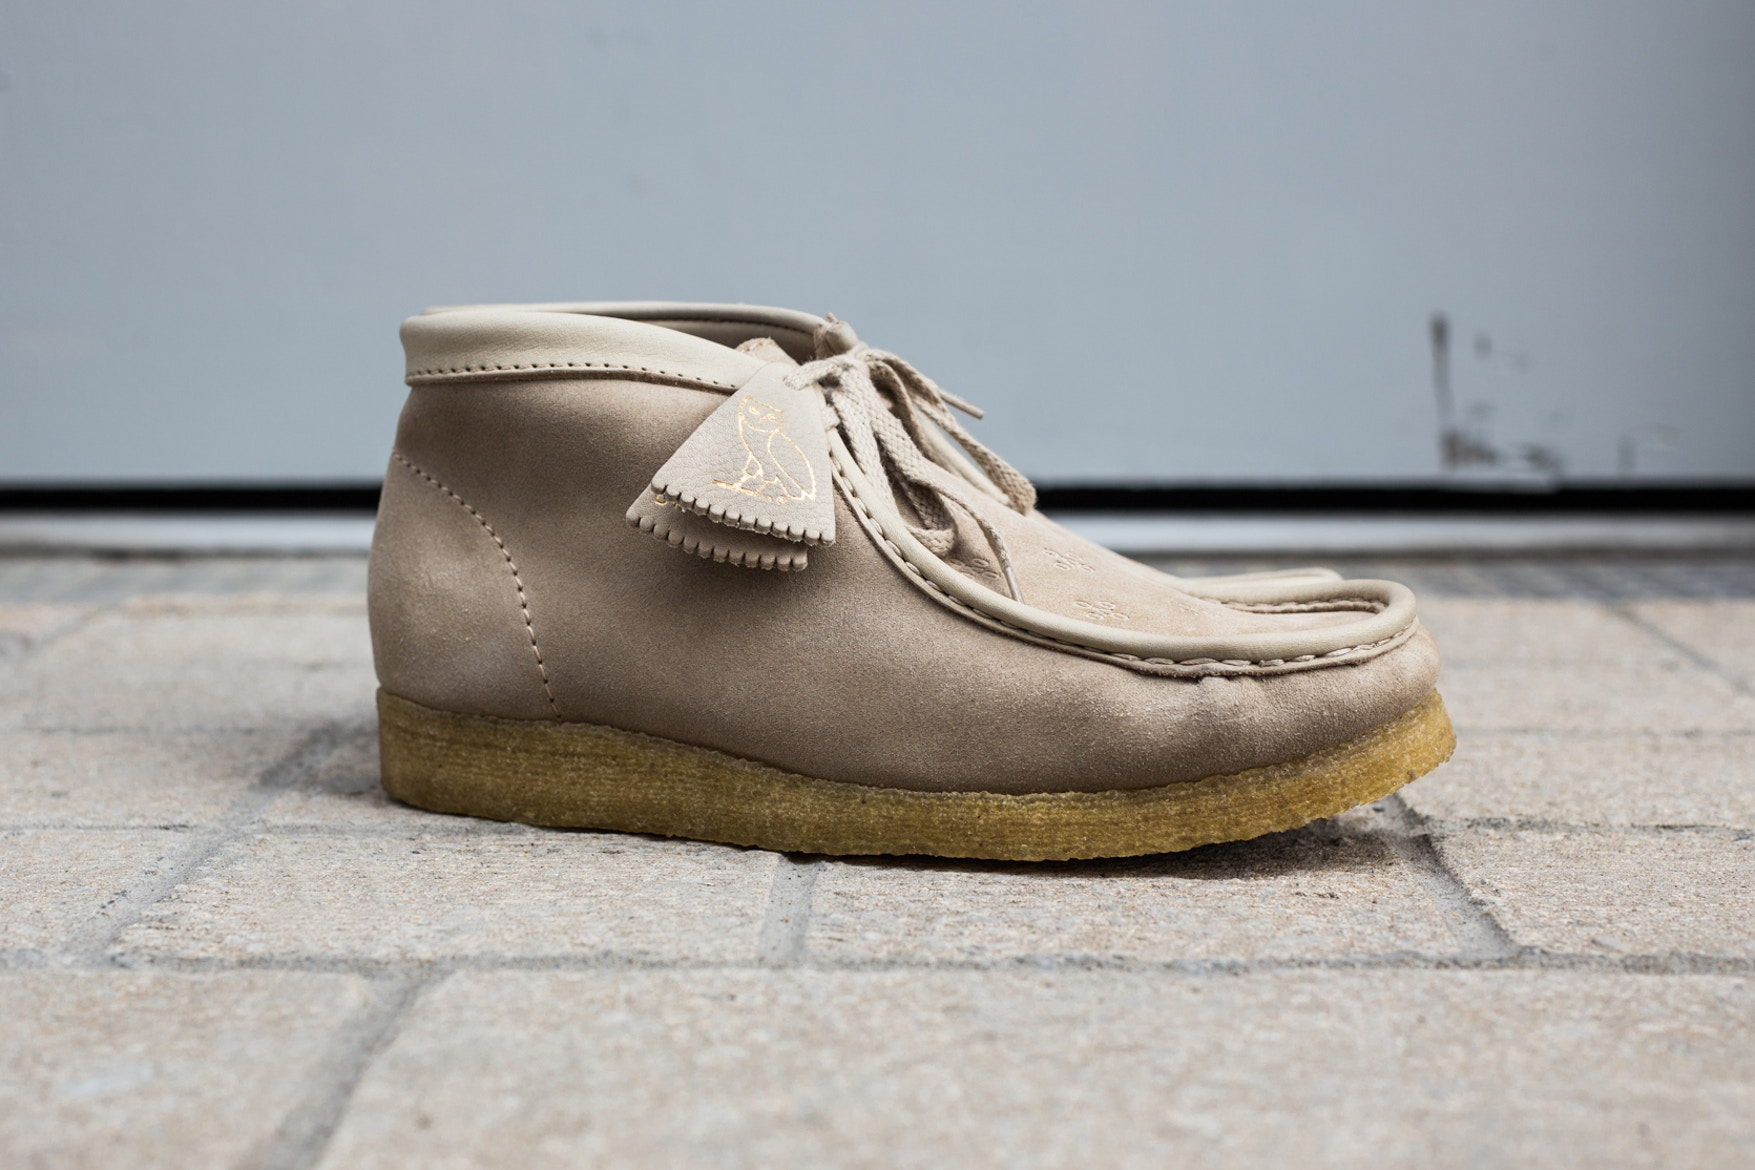 drake-ovo-clarks-wallabee-closer-look-1